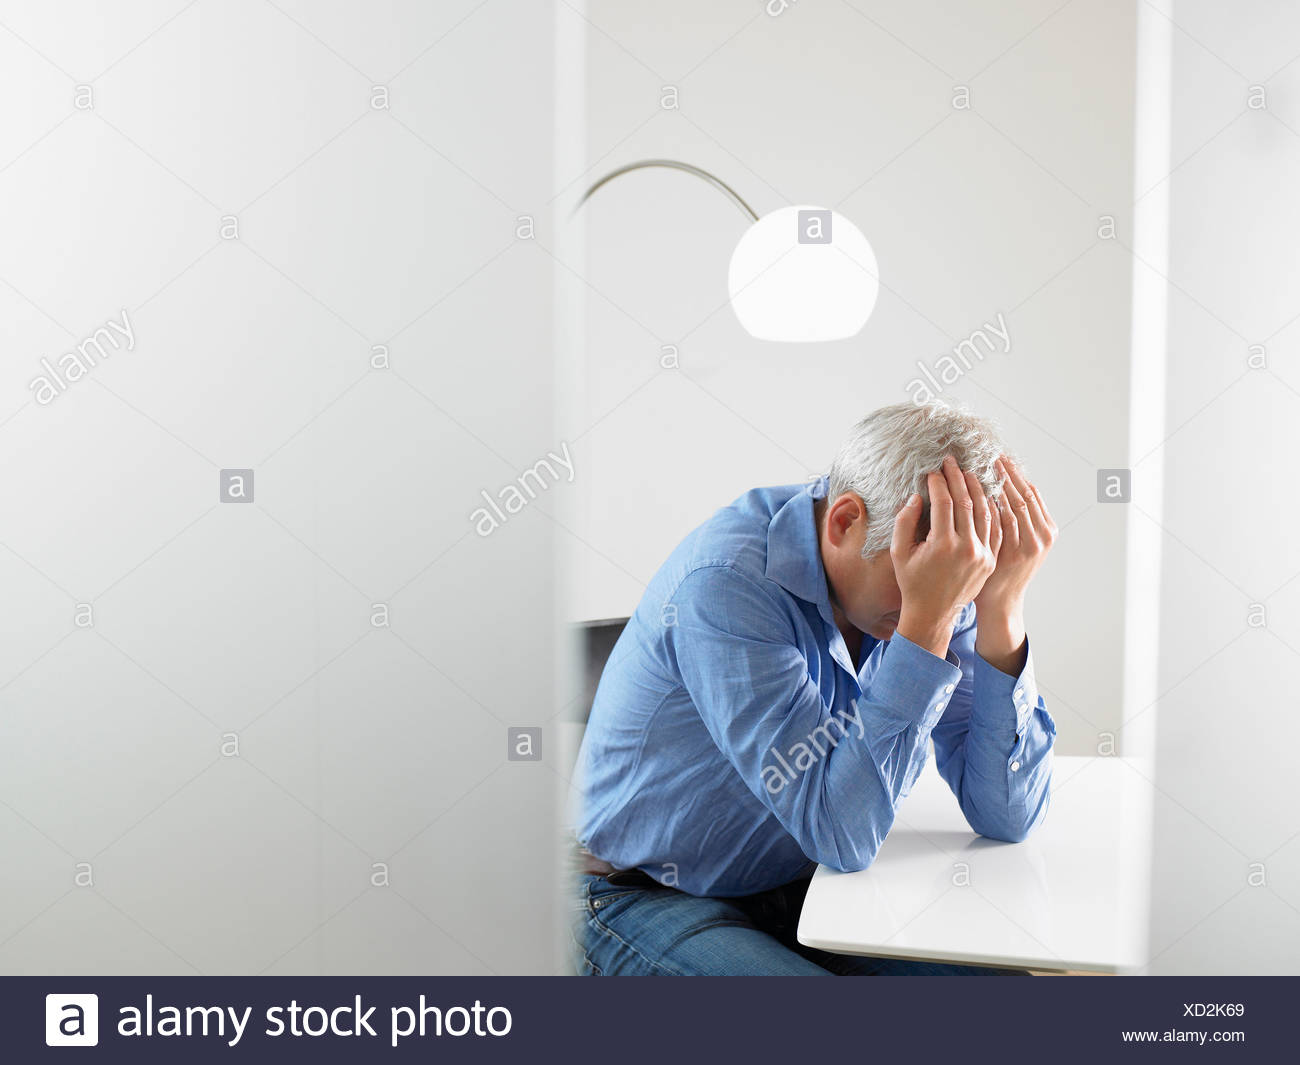 Desperate man at his desk - Stock Image